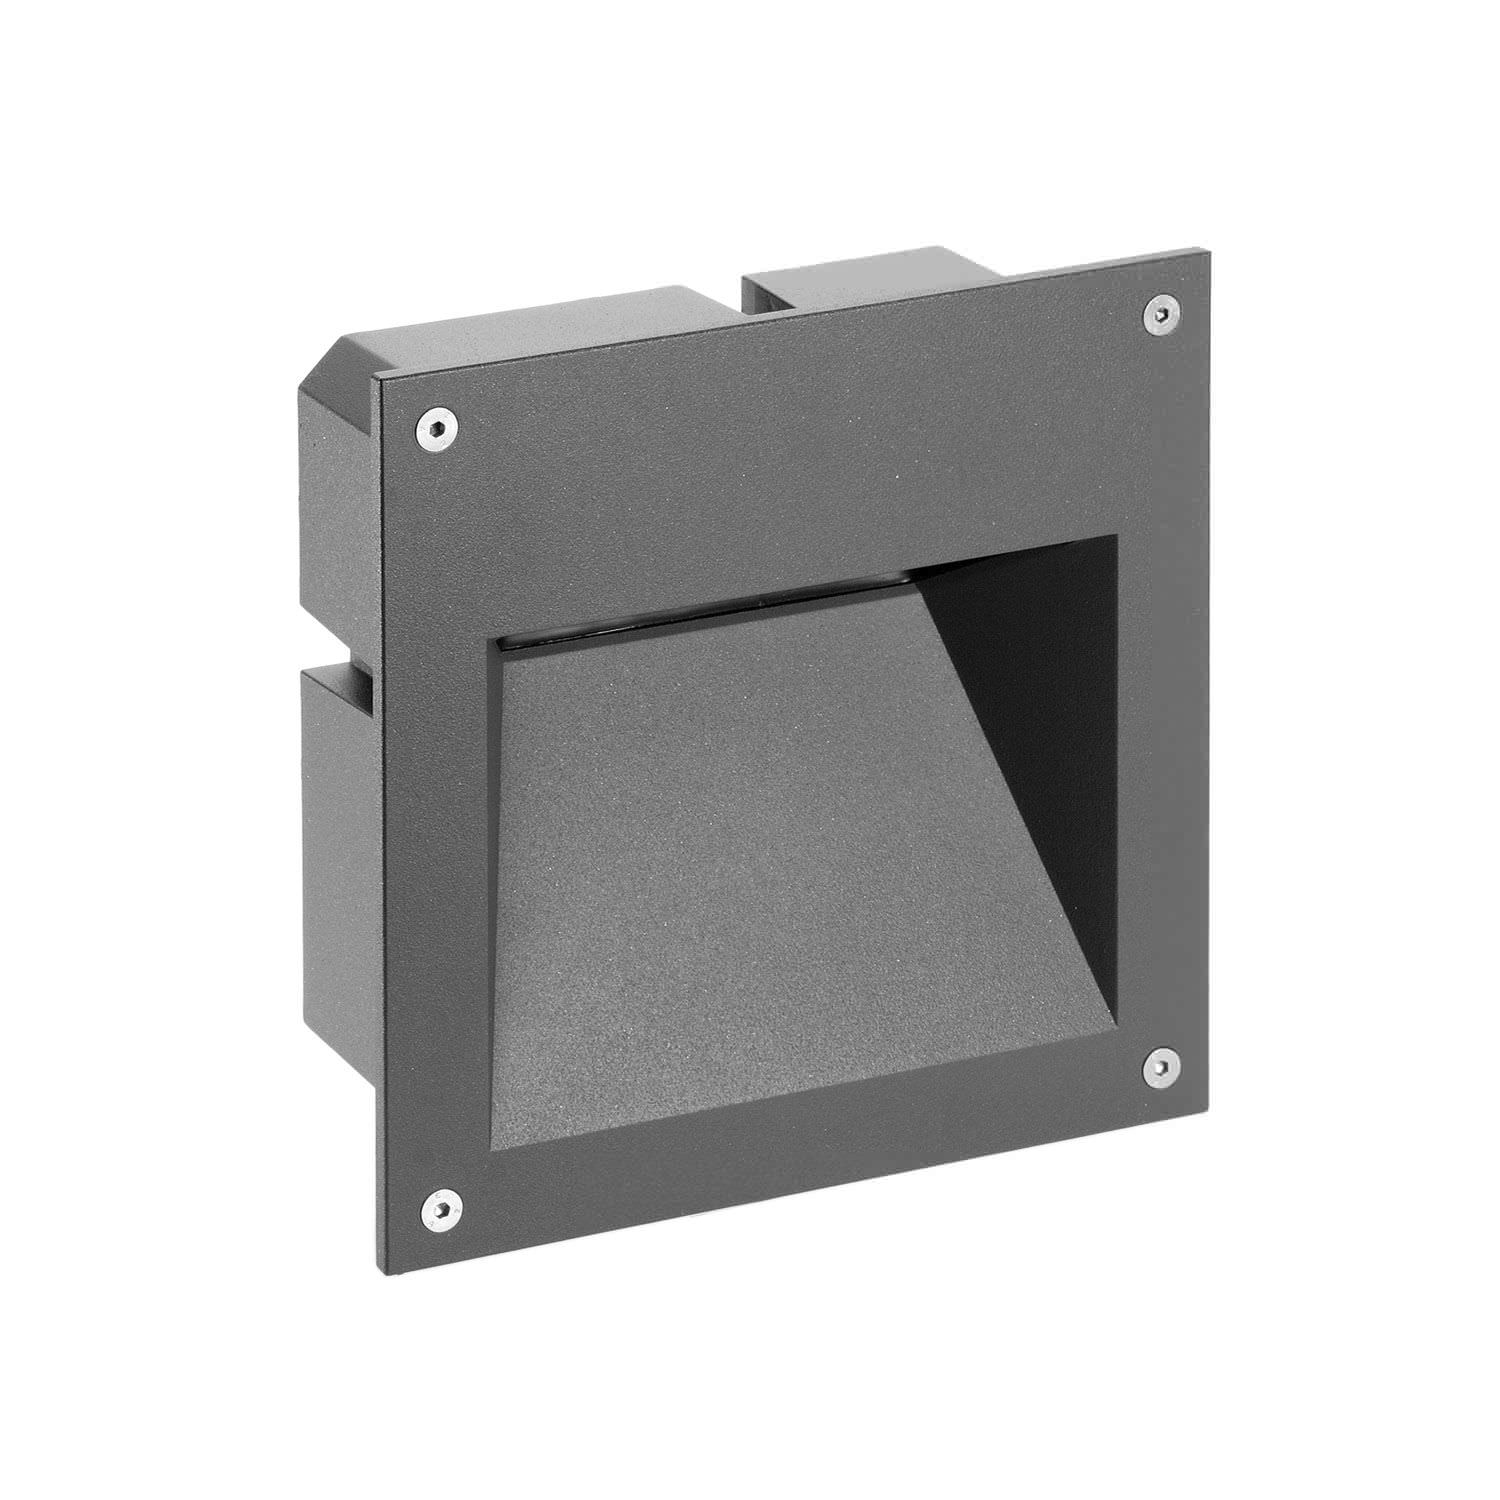 Recessed Outdoor Led Lighting - Craluxlighting.Com